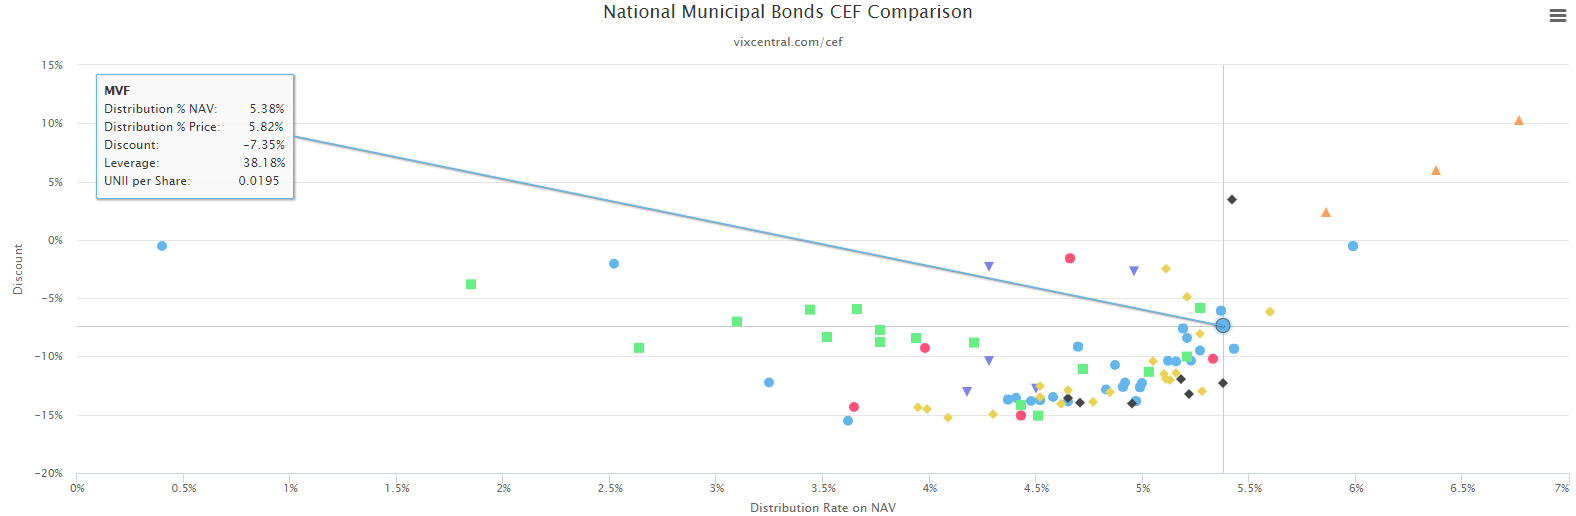 Weekly Municipal Bond CEF Trades: This Fund Is A Very Good Combination Of High Distribution Rate On NAV And Discount